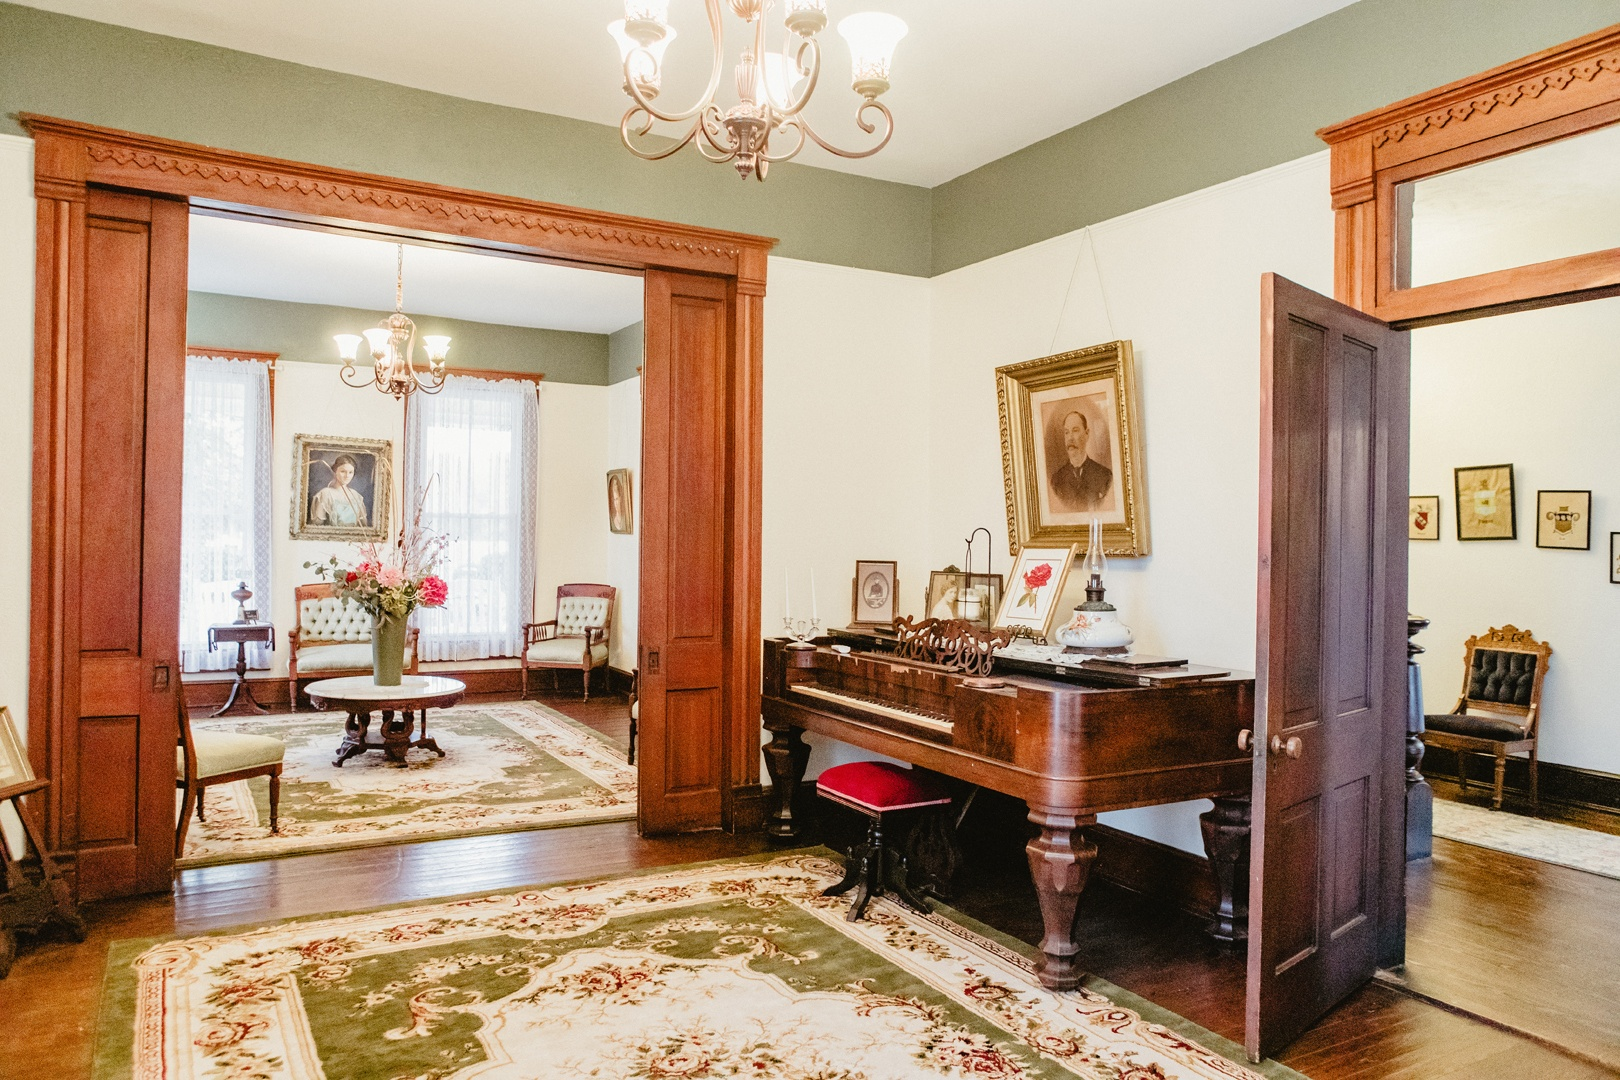 The double parlor is divided by large wooden doors.